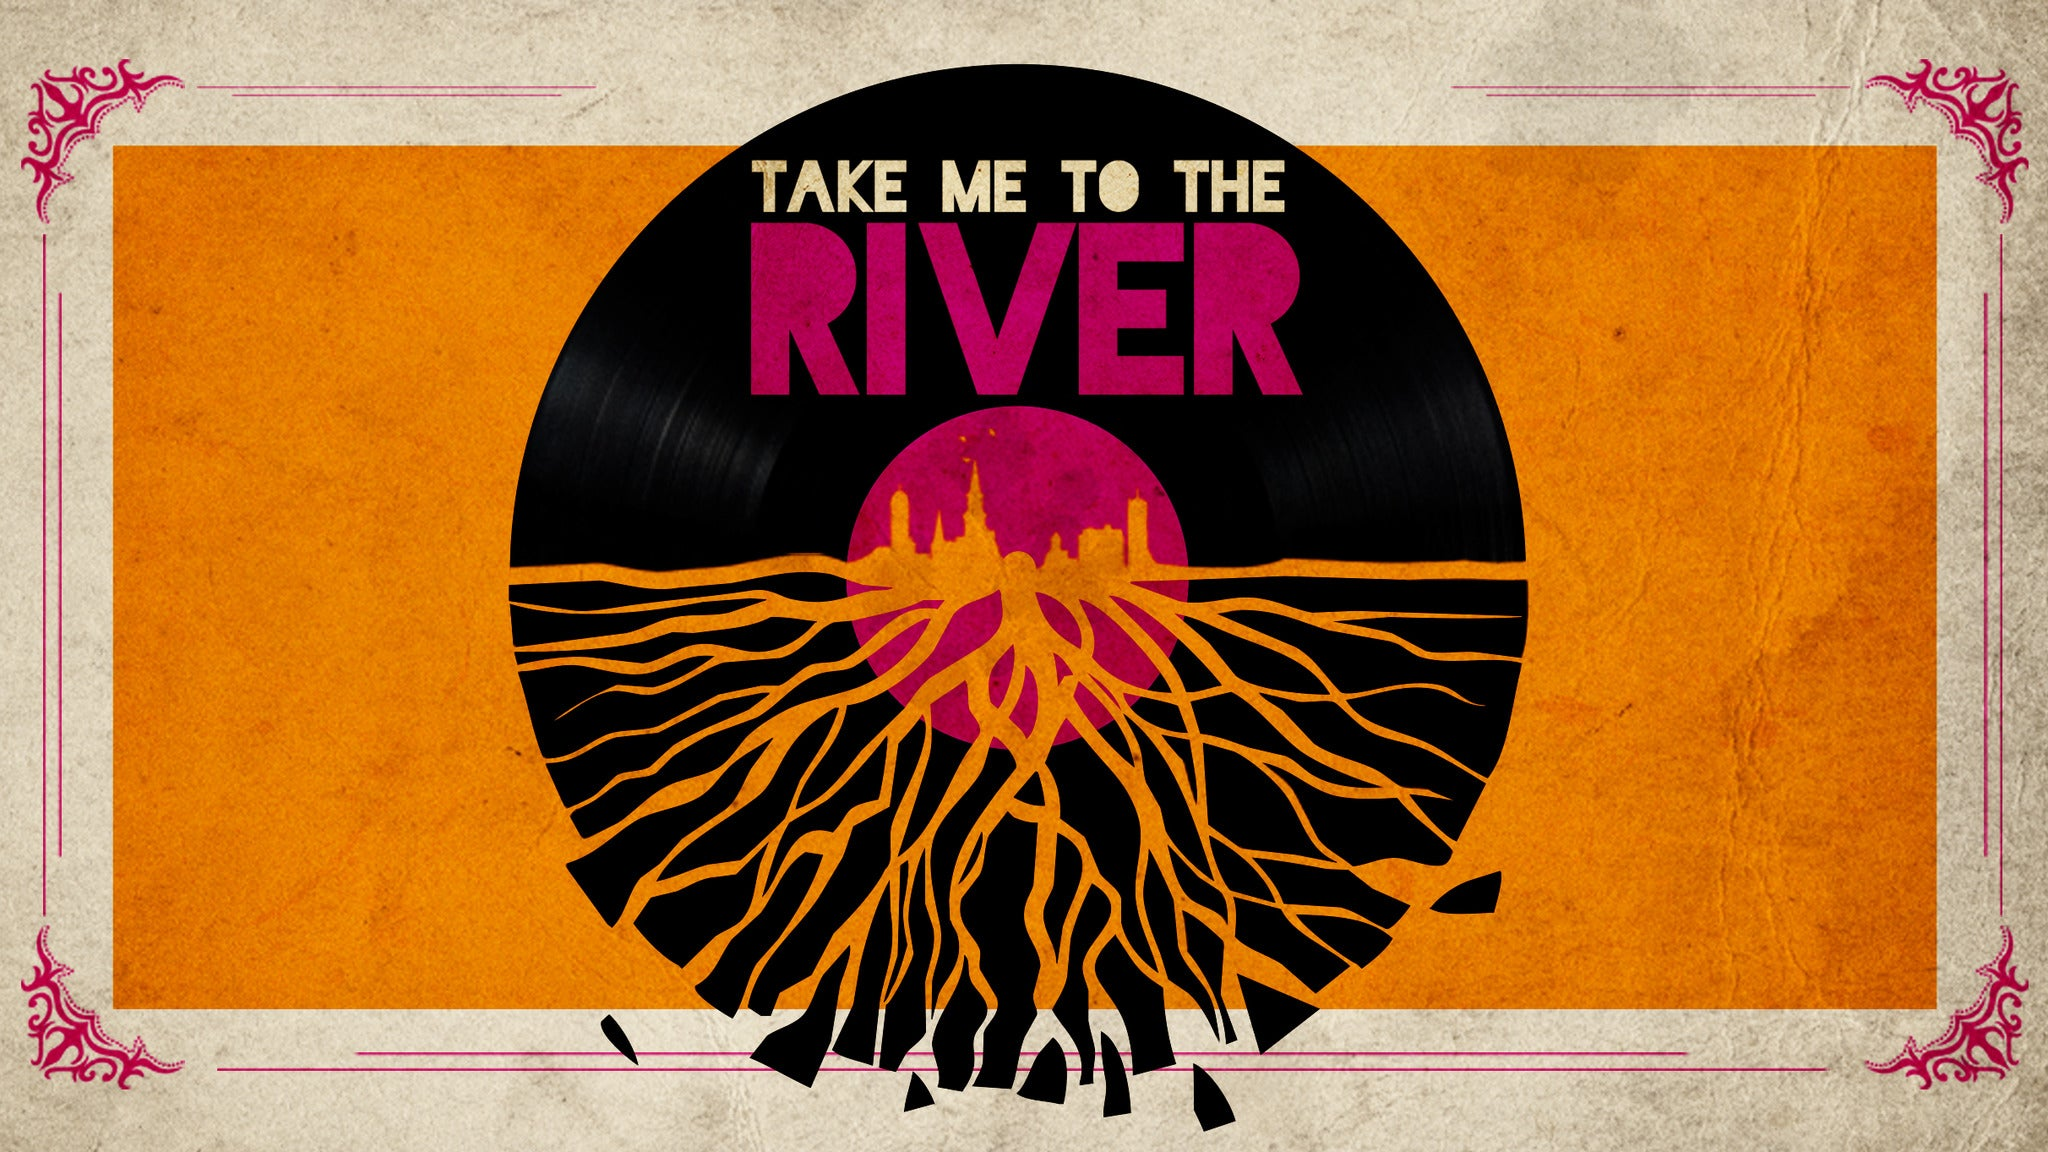 Take Me To the River Live w/ Dirty Dozen Brass Band